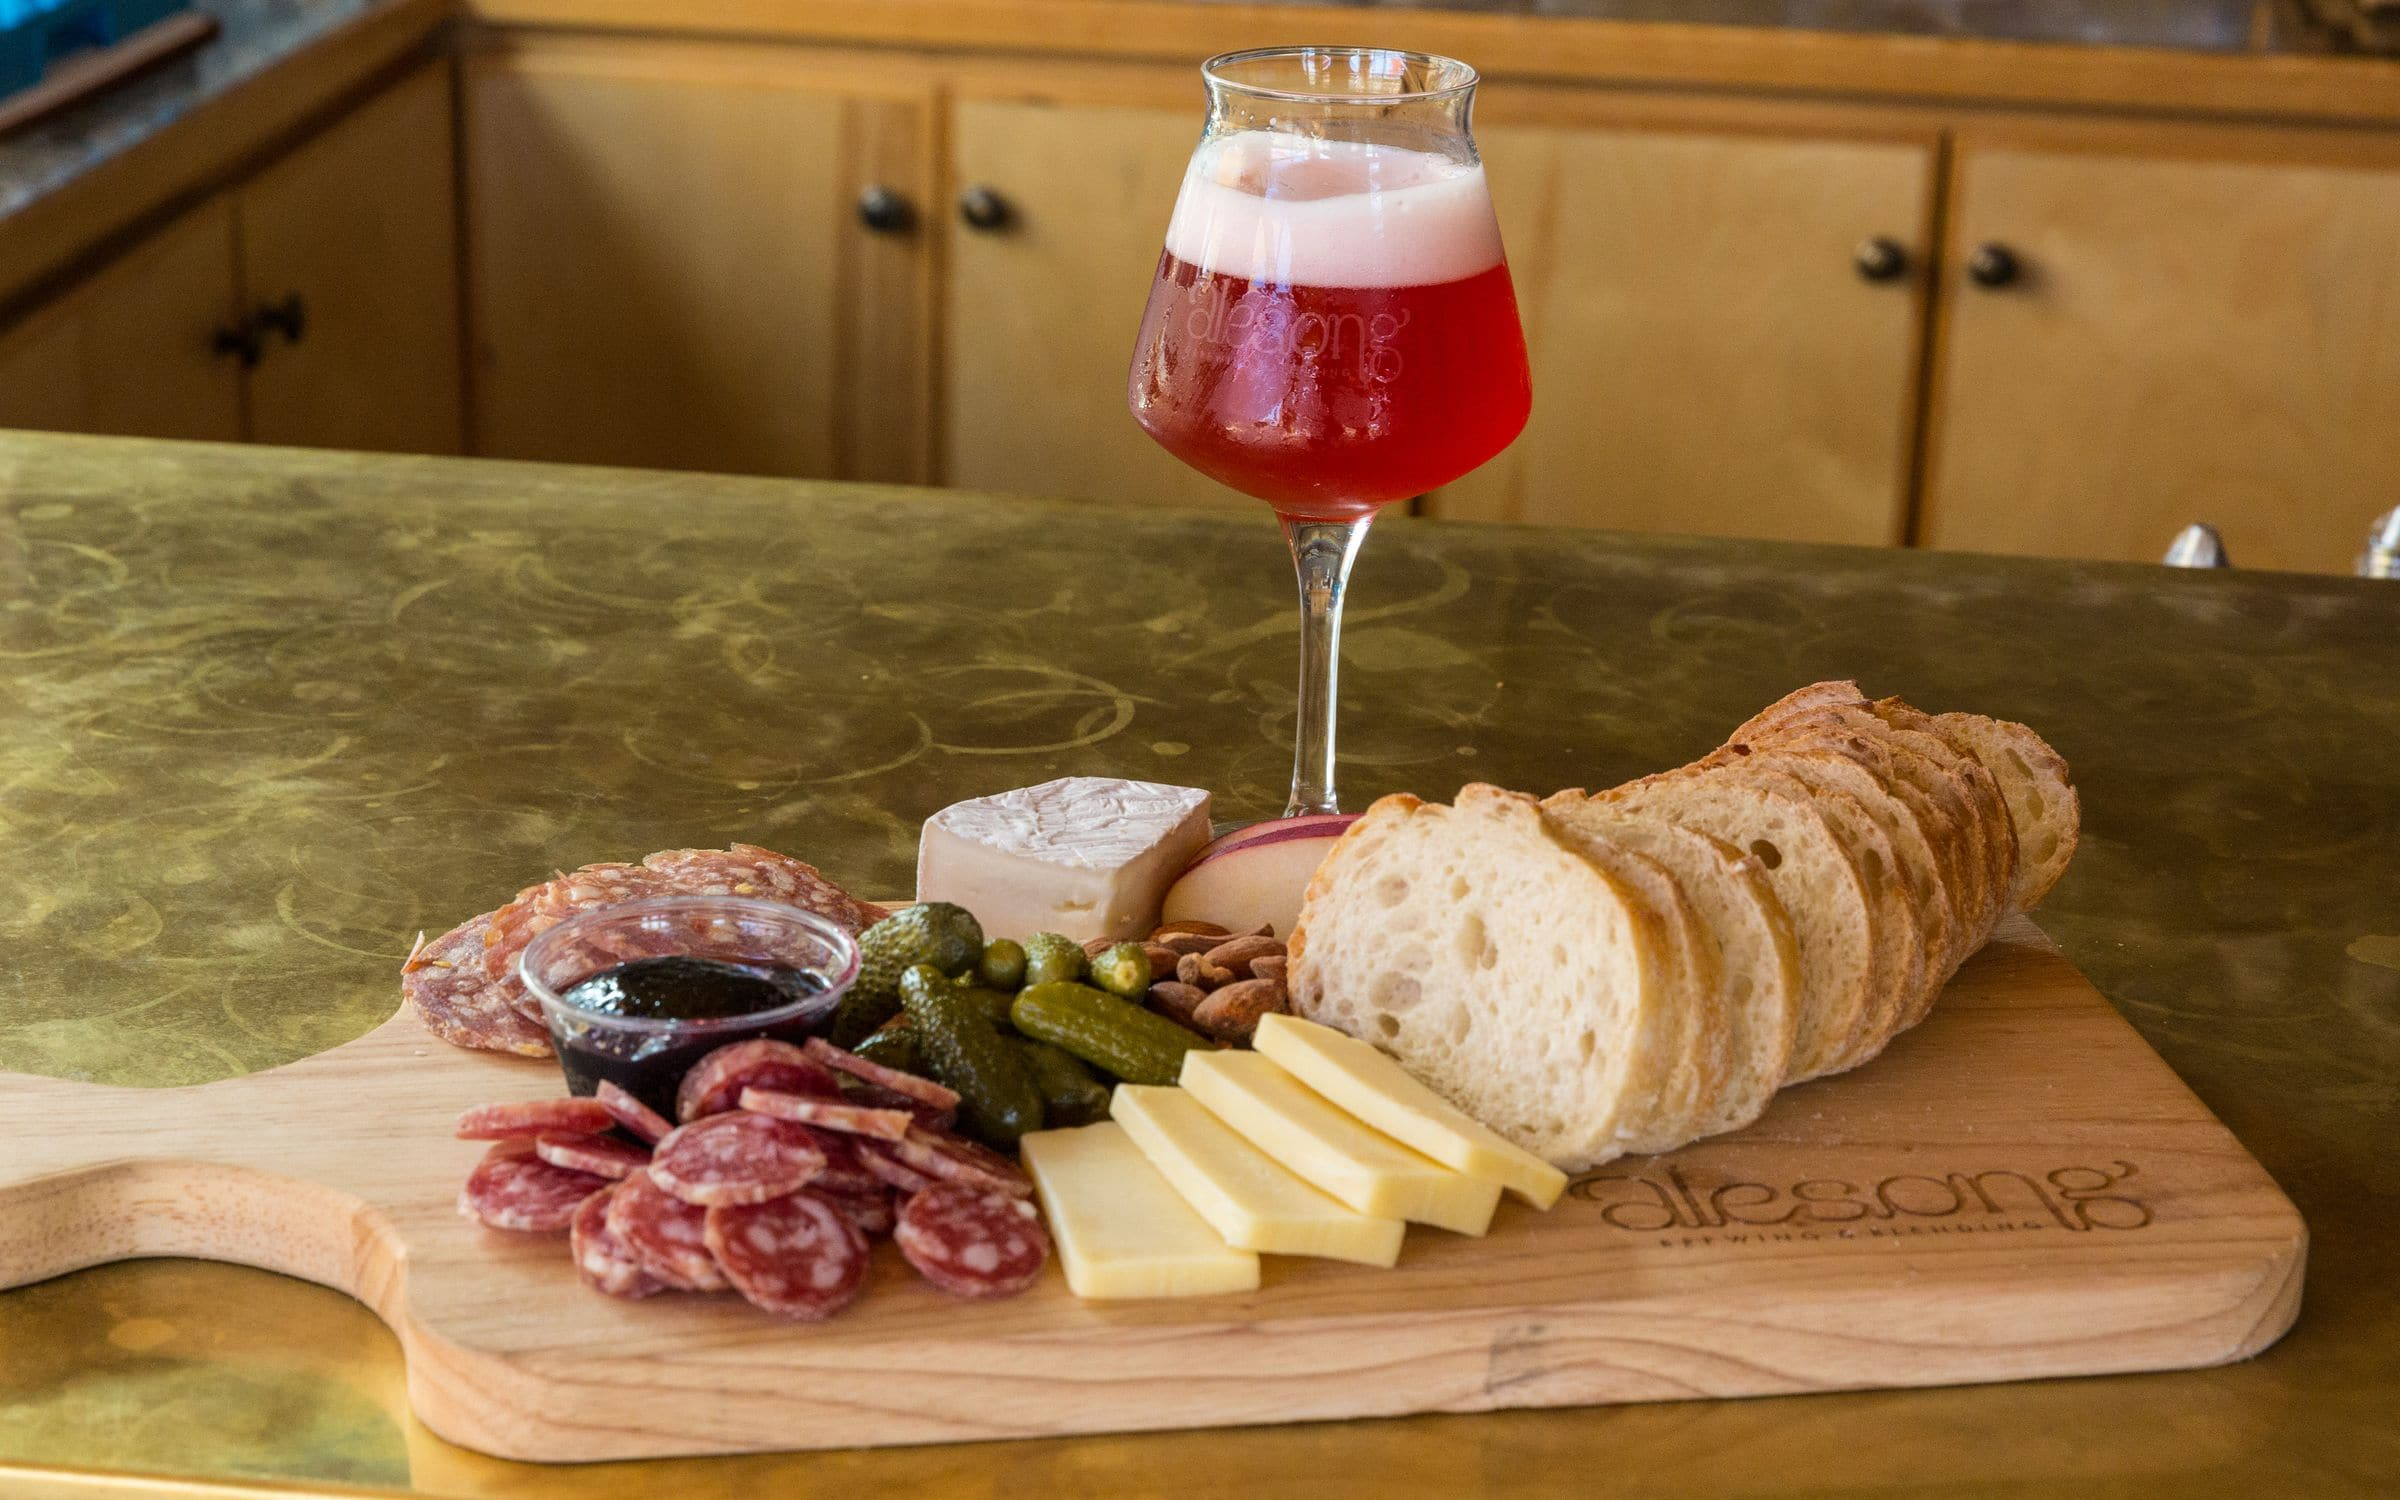 Charcuterie board and stemmed glass of barrel-aged beer.